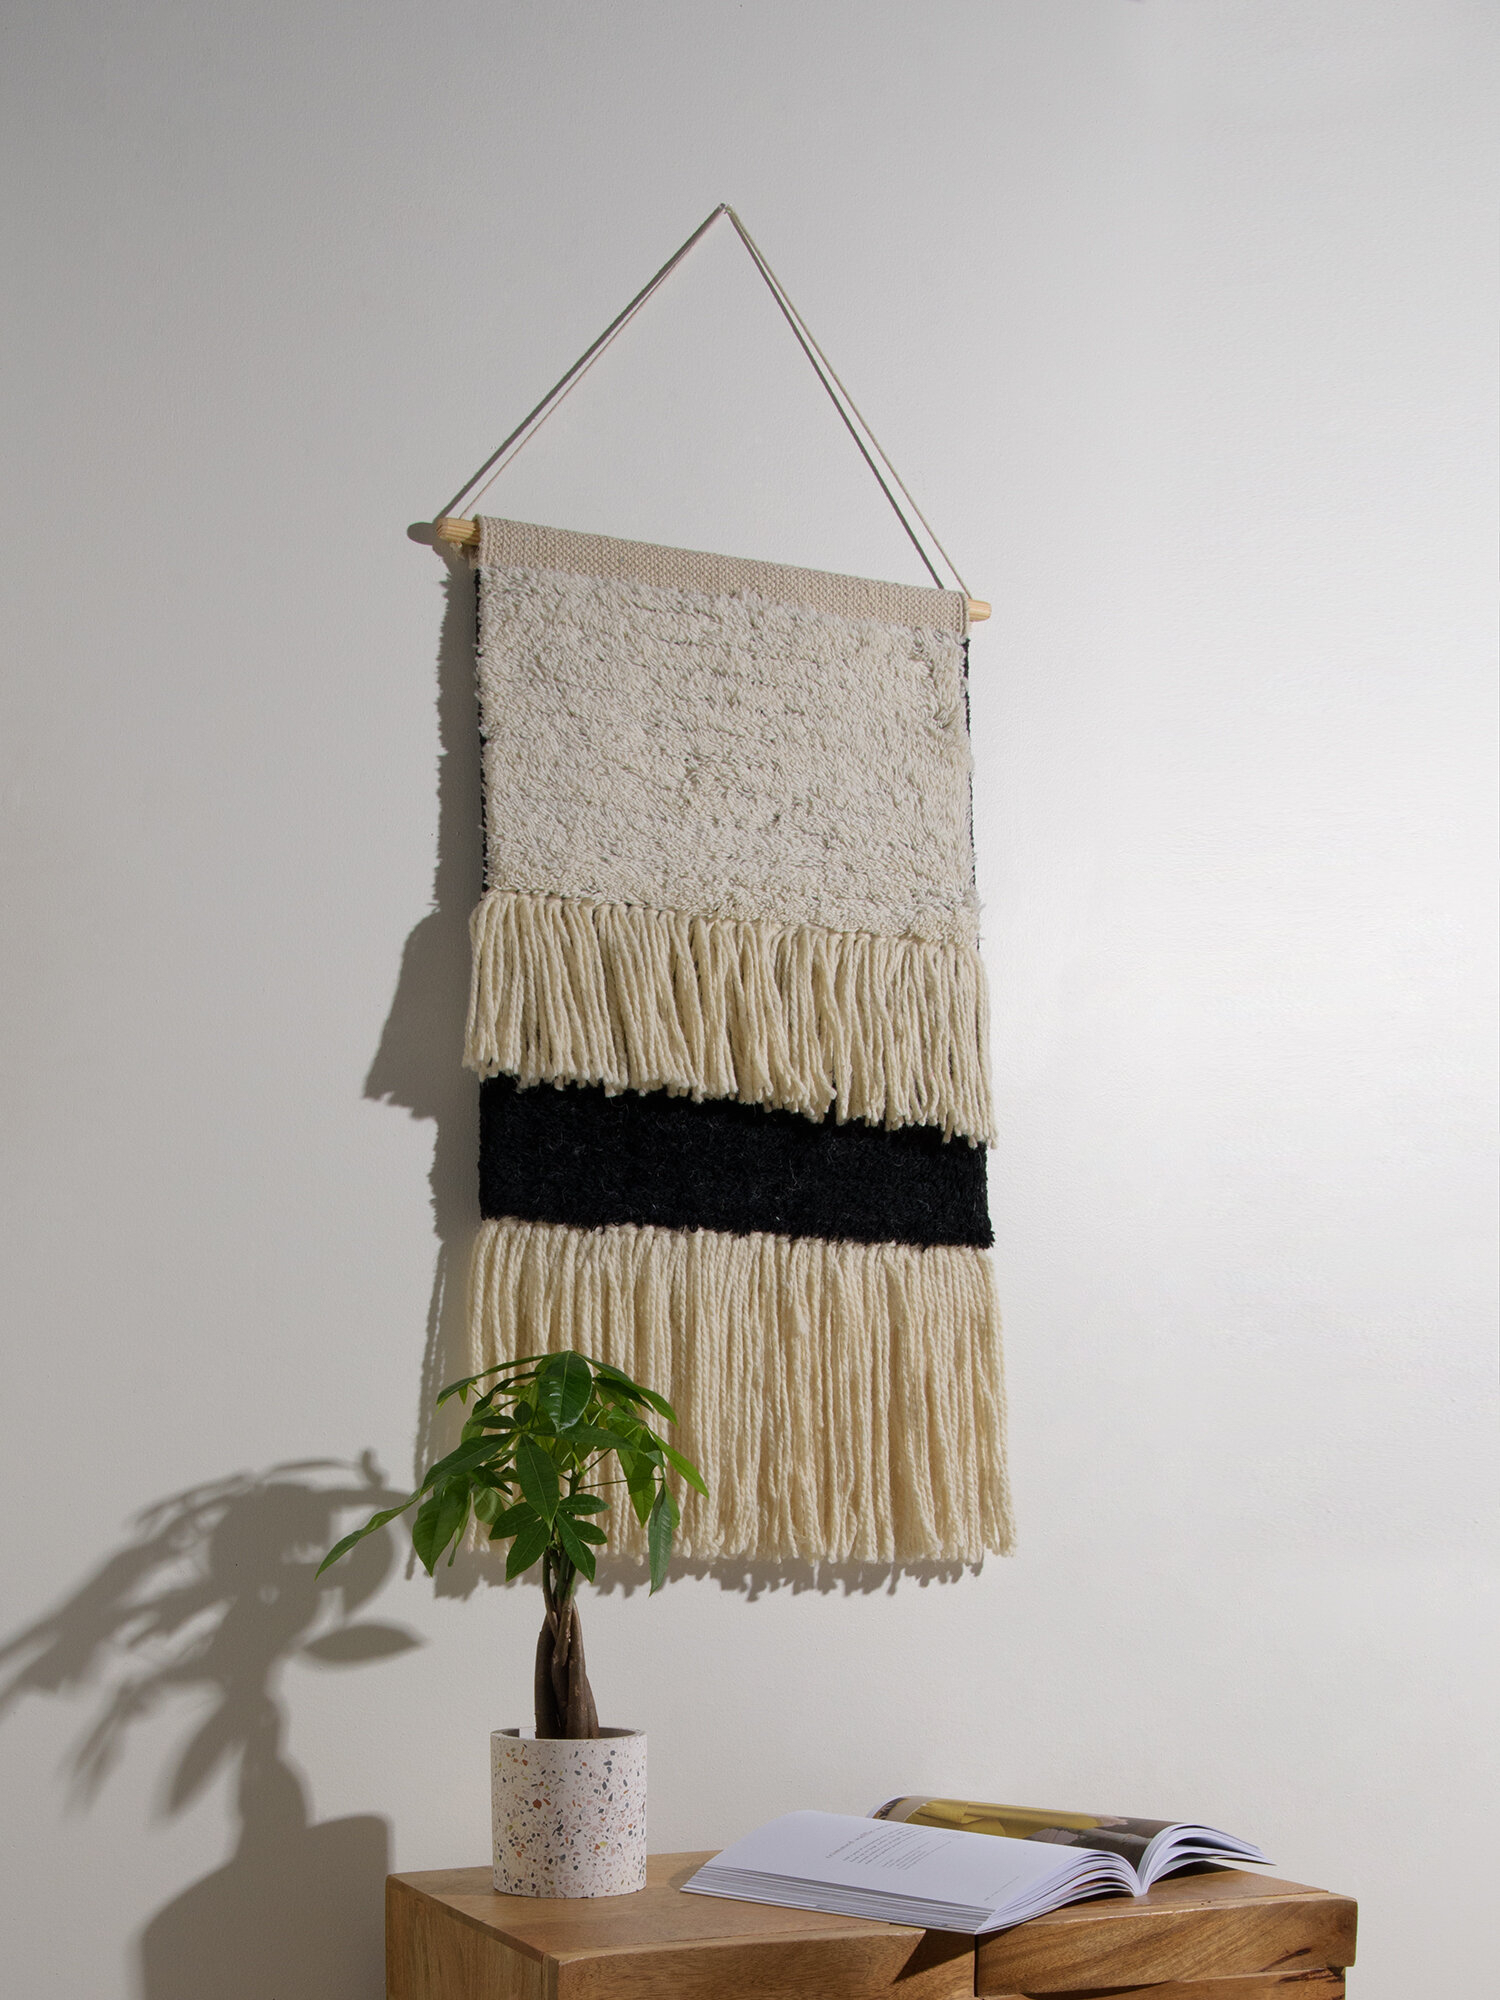 Blended Fabric Wall Hanging With Hanging Accessories Included Regarding Most Current Blended Fabric Wall Hangings (View 10 of 20)